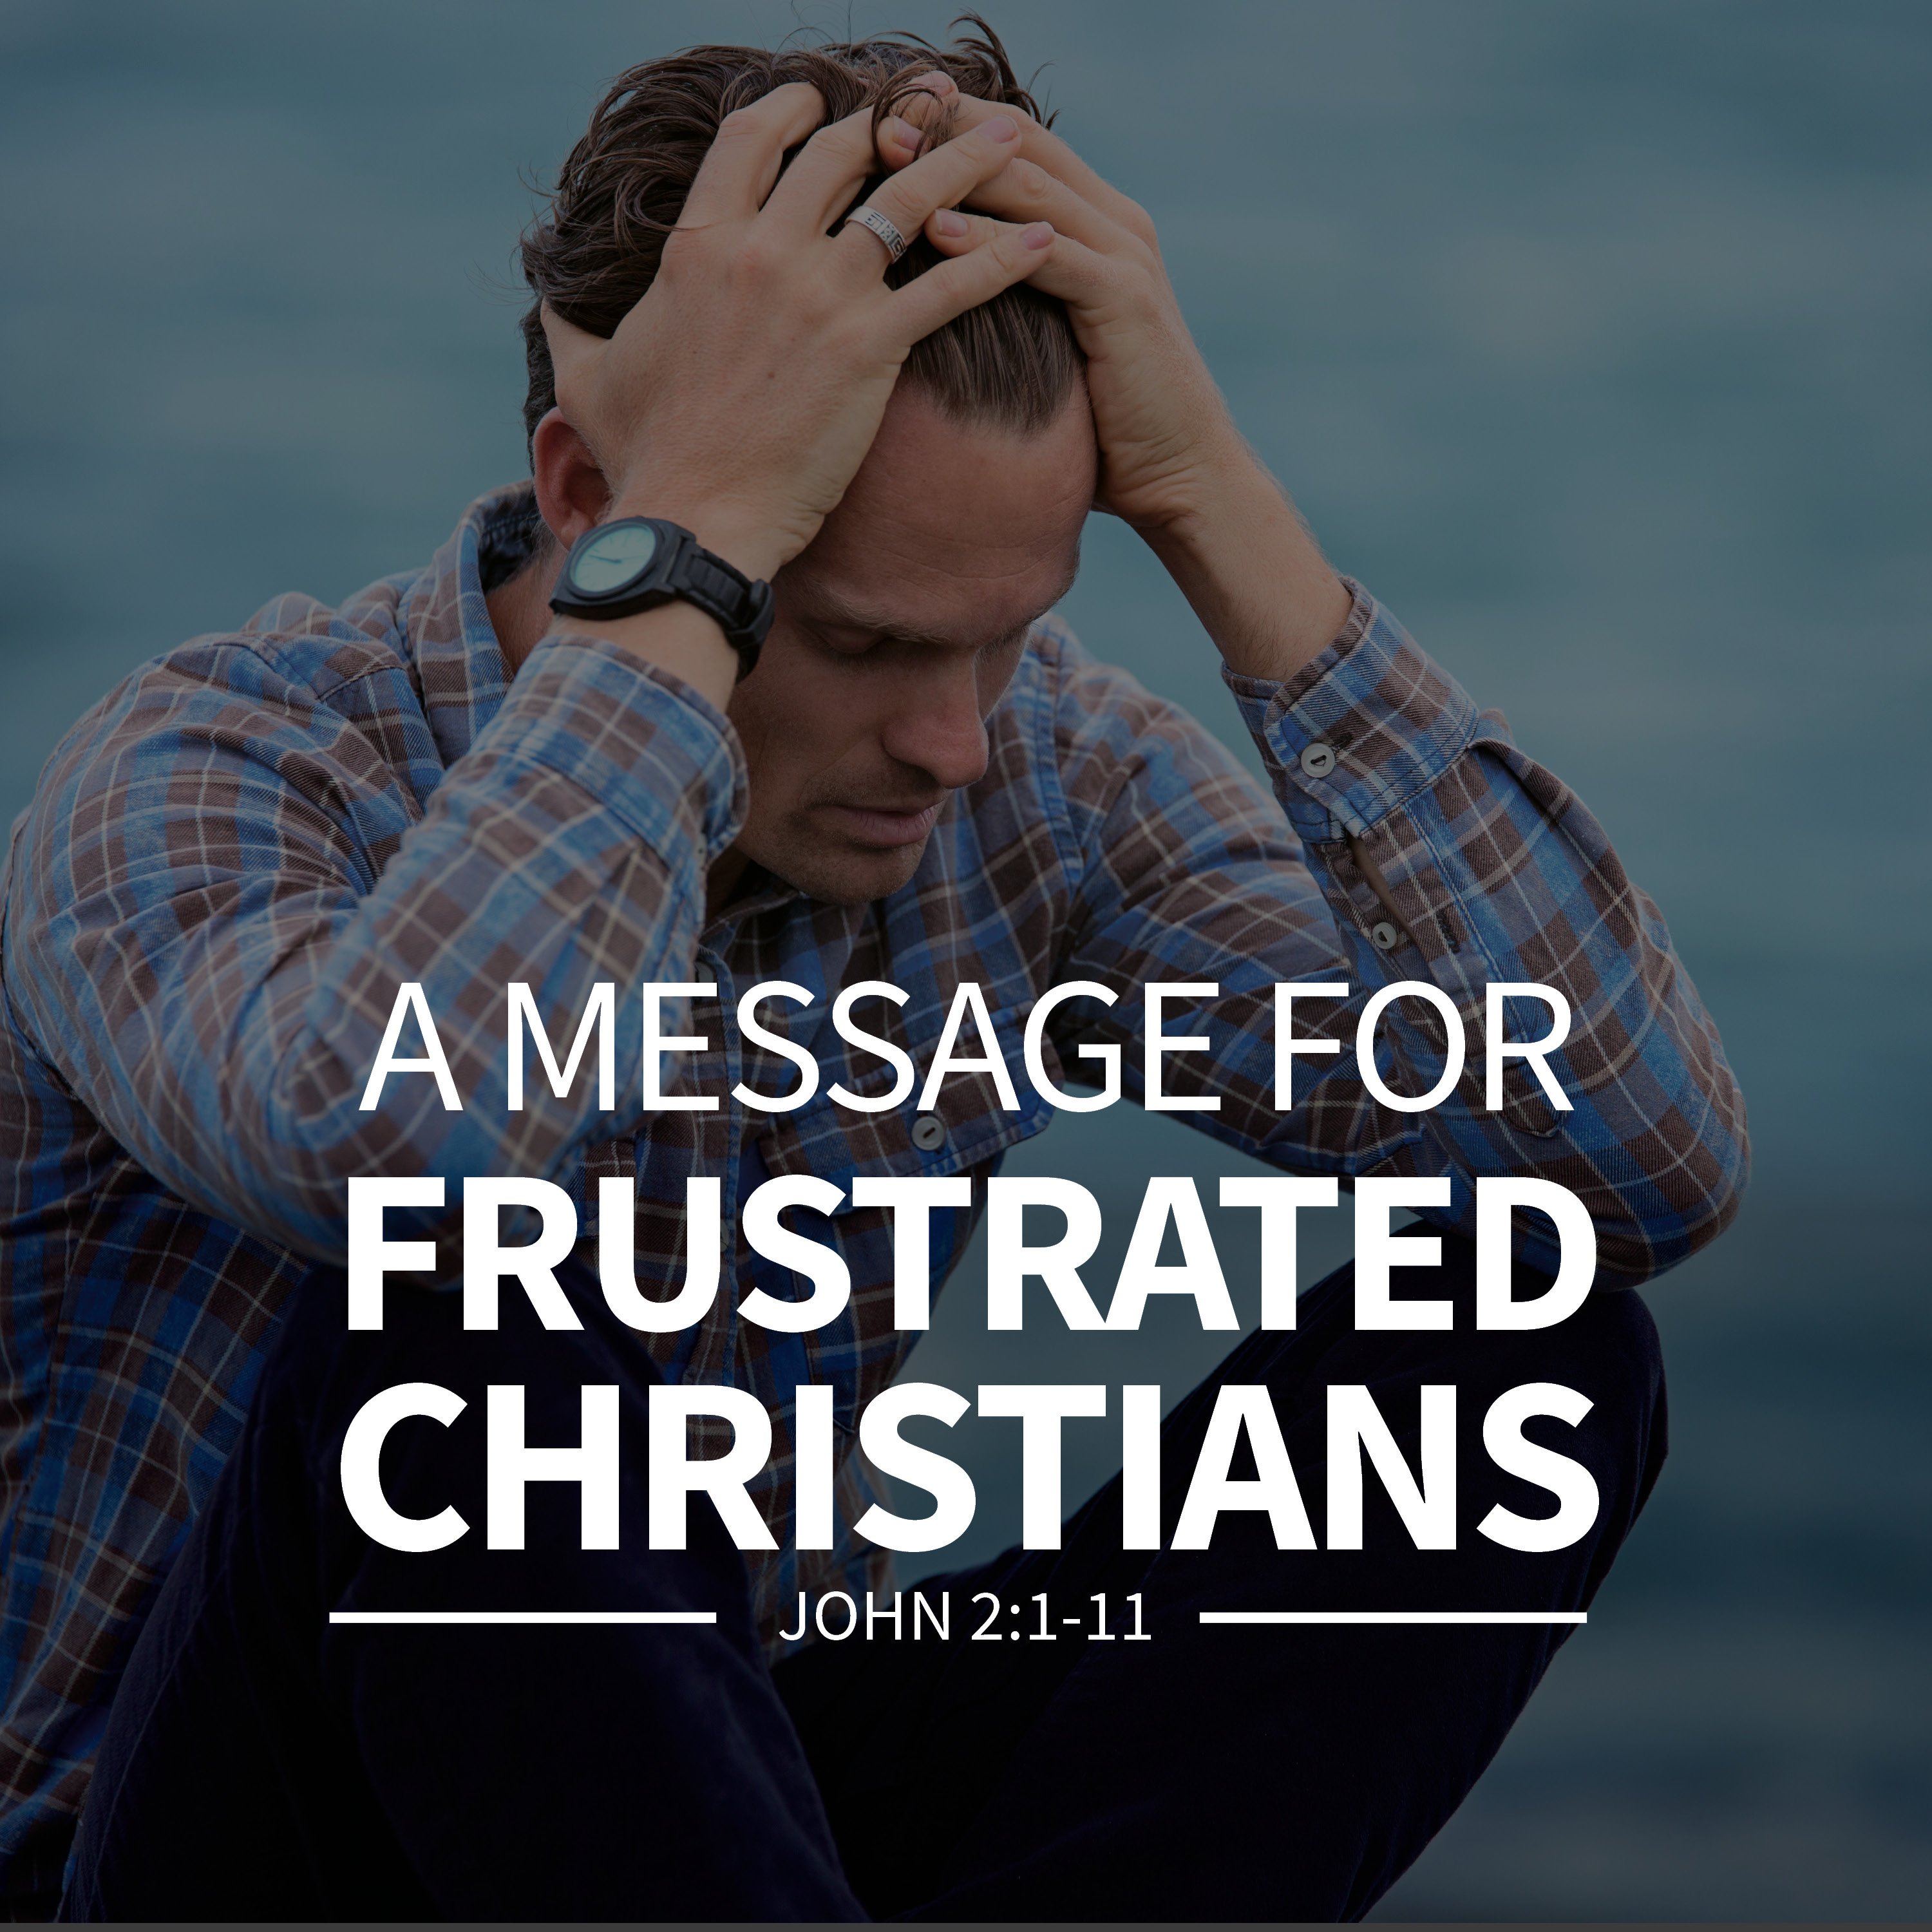 MESSAGE - A Message for Frustrated Christians [John 2:1-11]